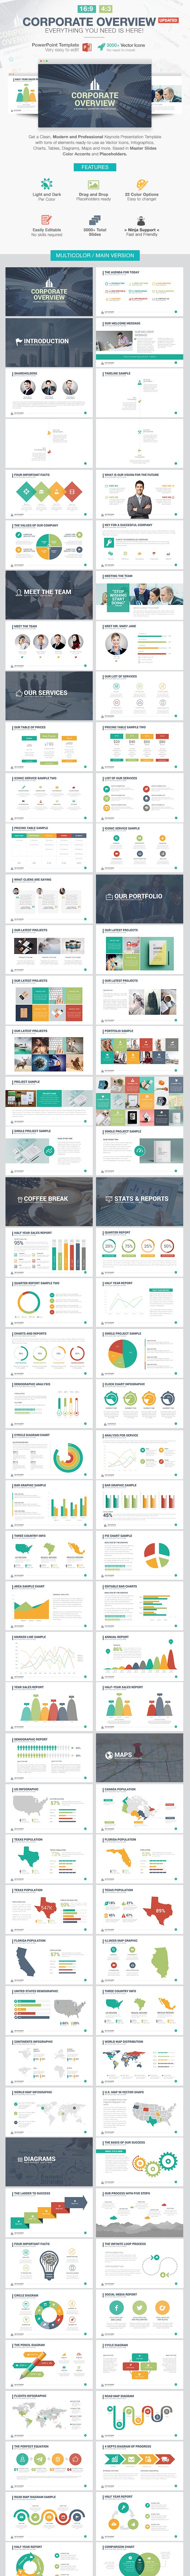 Corporate Overview Powerpoint Template - Business PowerPoint Templates